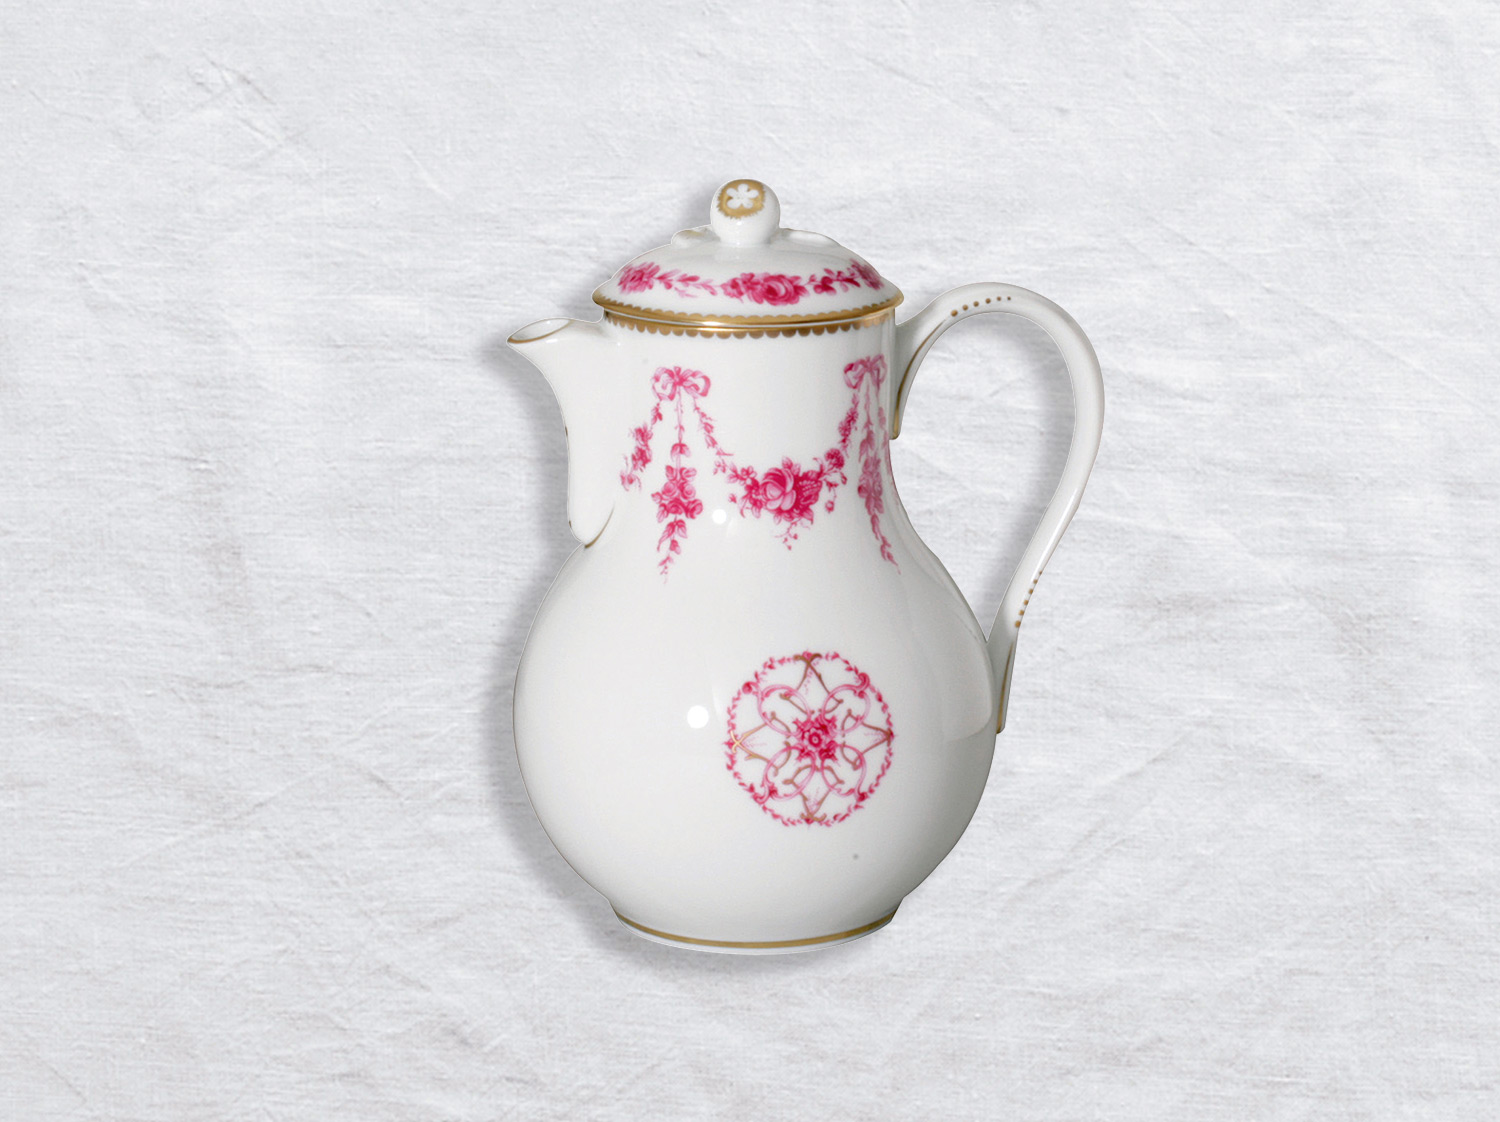 Verseuse haute 12 tasses 1,4 L en porcelaine de la collection Louis xv Bernardaud